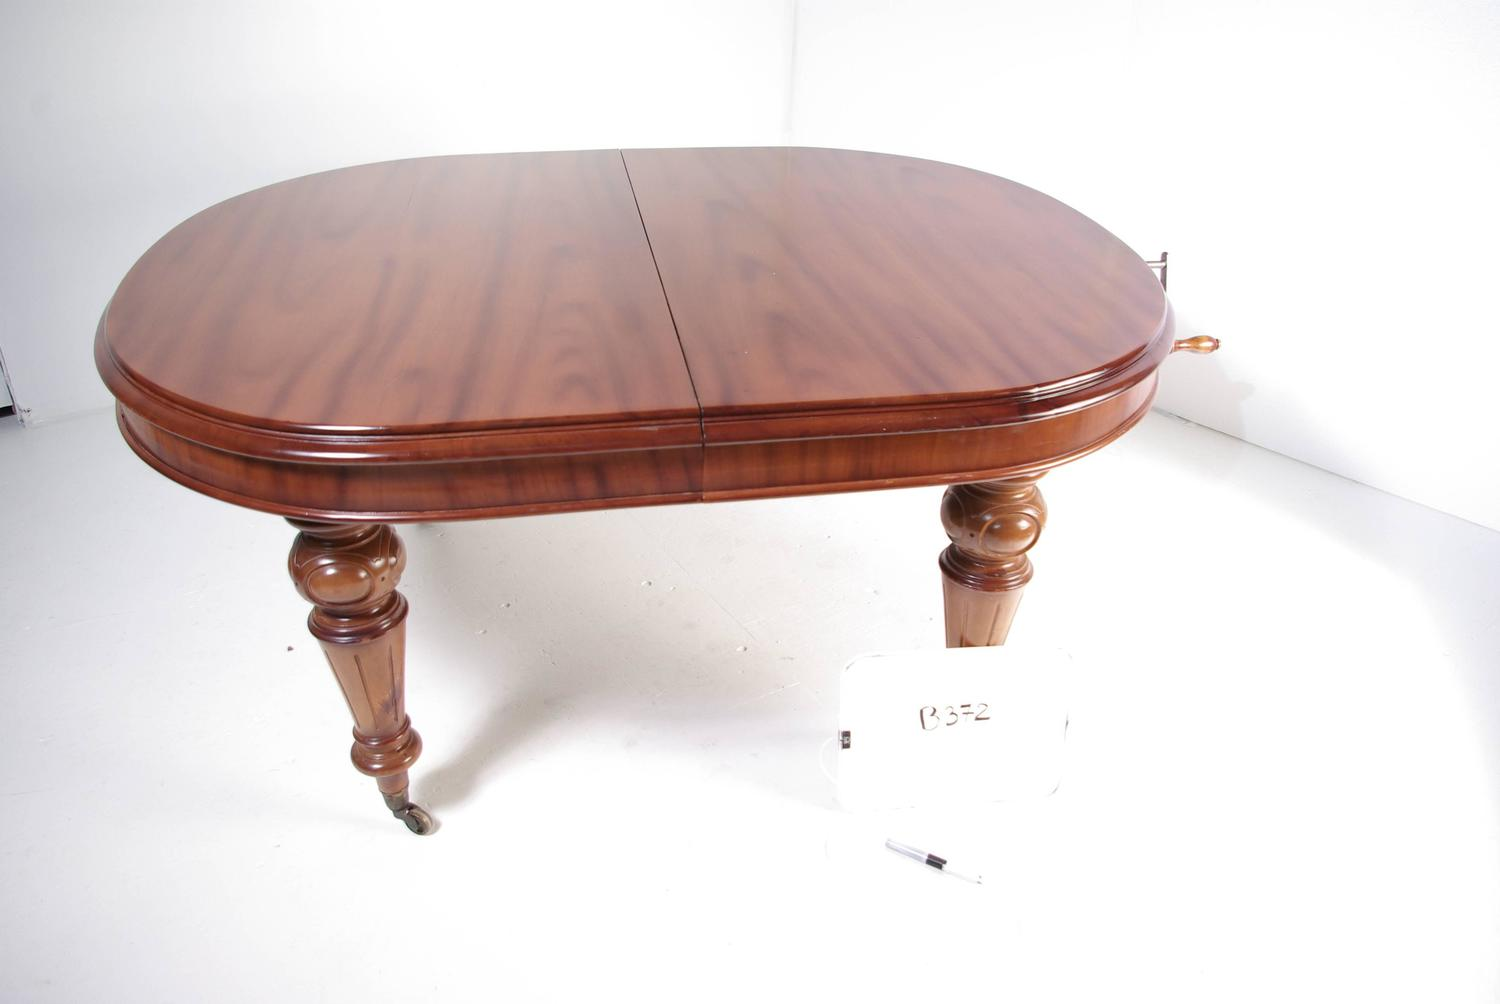 b372 antique victorian mahogany oval dining room table